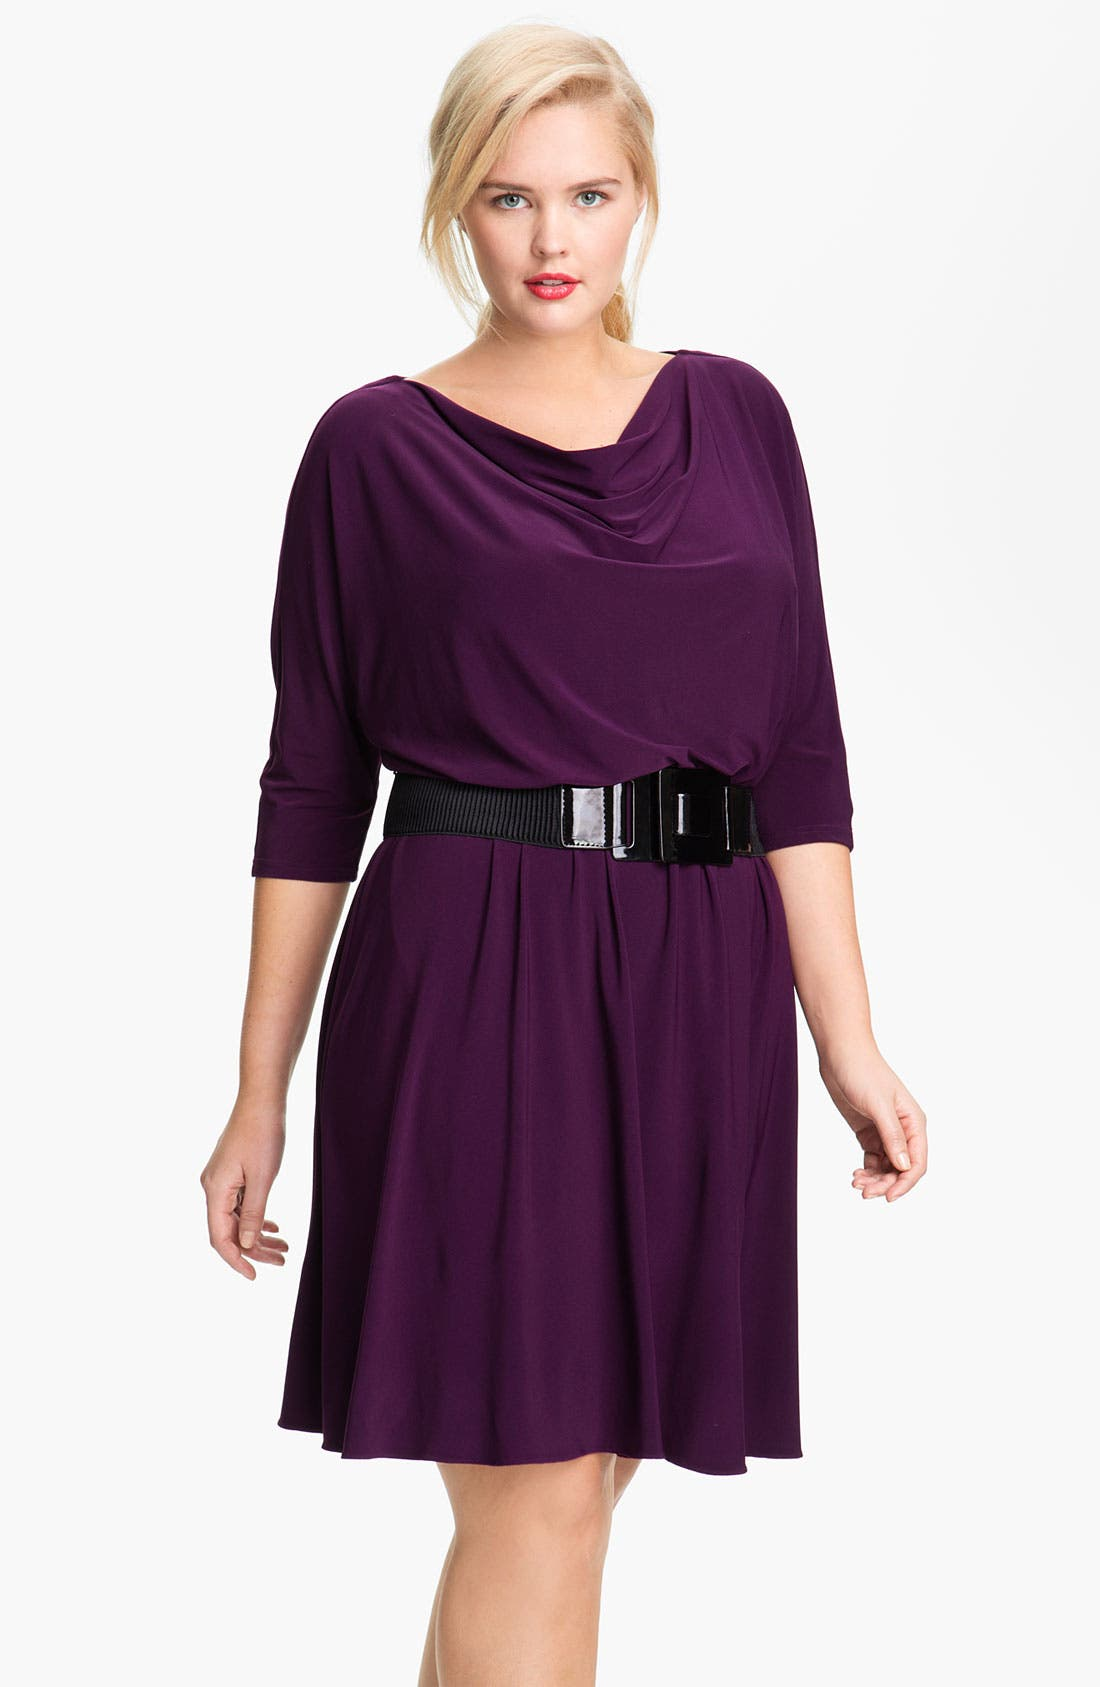 Alternate Image 1 Selected - Adrianna Papell Dolman Sleeve Flare Dress (Plus)